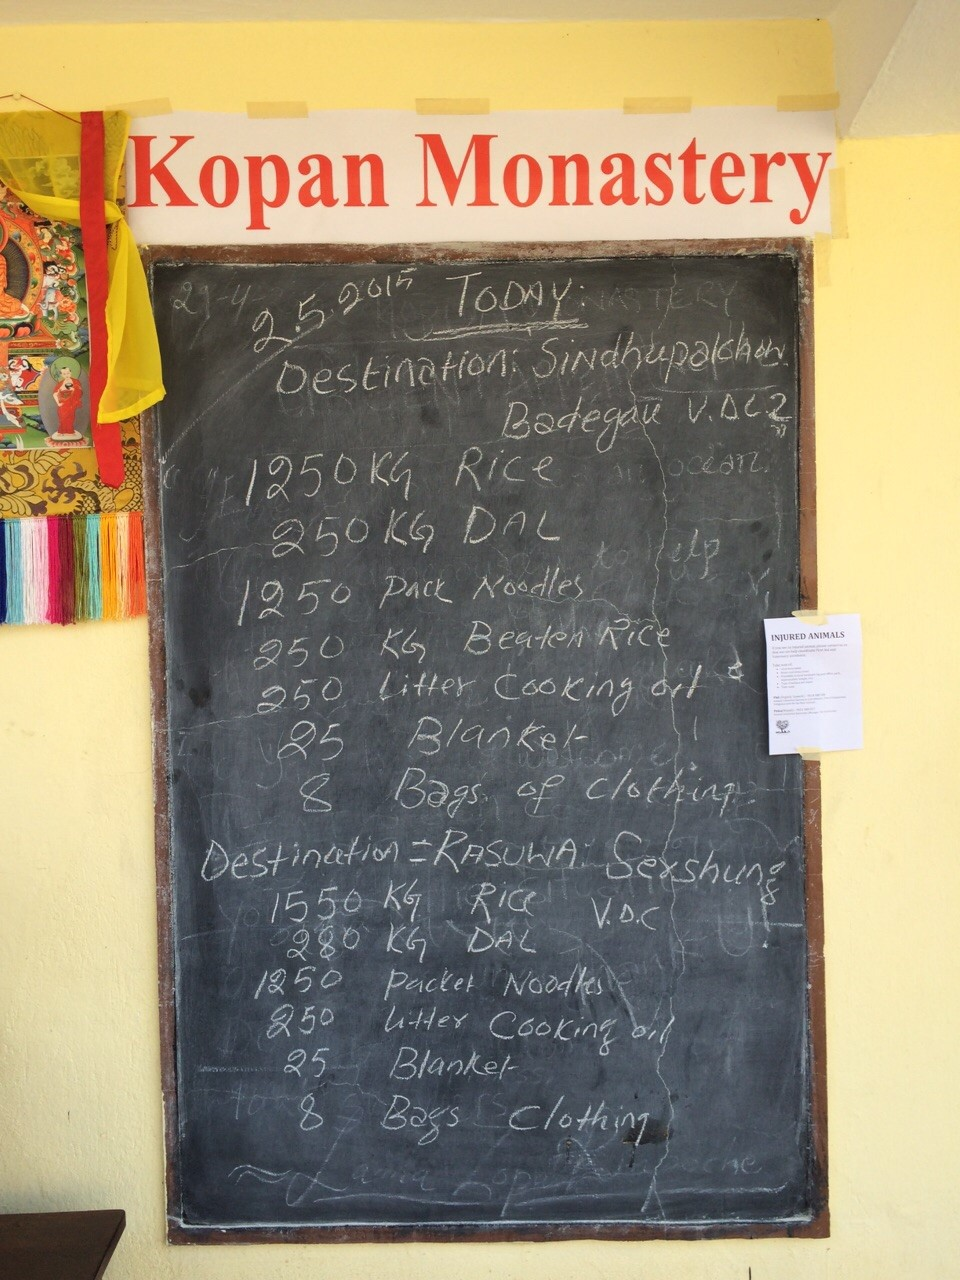 A sign at Kopan Monastery showing what is being sent out for aid that day, Nepal, May 2, 2015